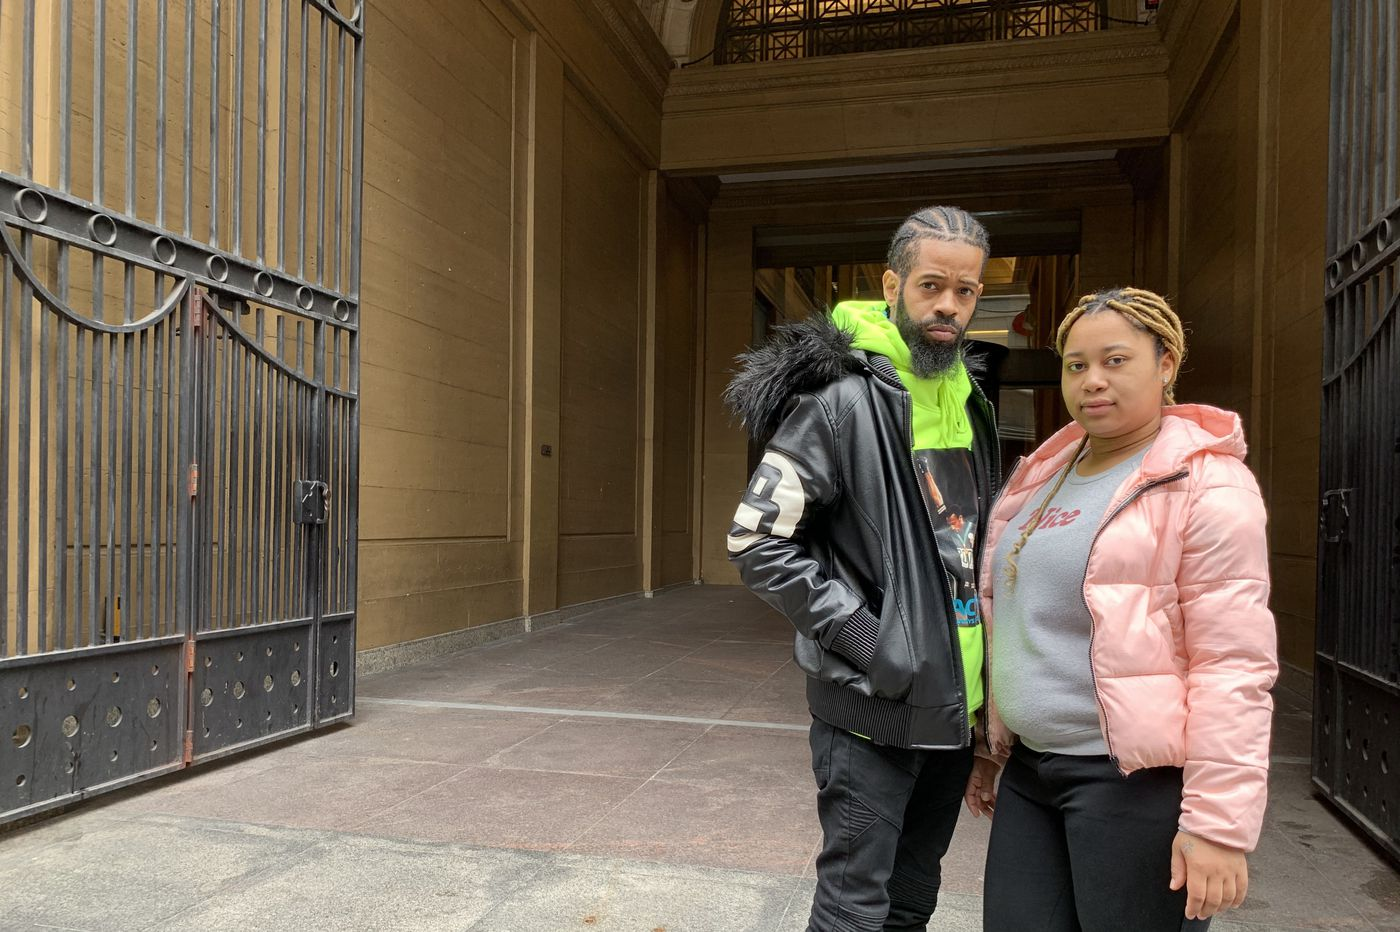 Amid coronavirus fears, Philadelphia City Council considers pressuring for an end to evictions, foreclosures, utility shutoffs